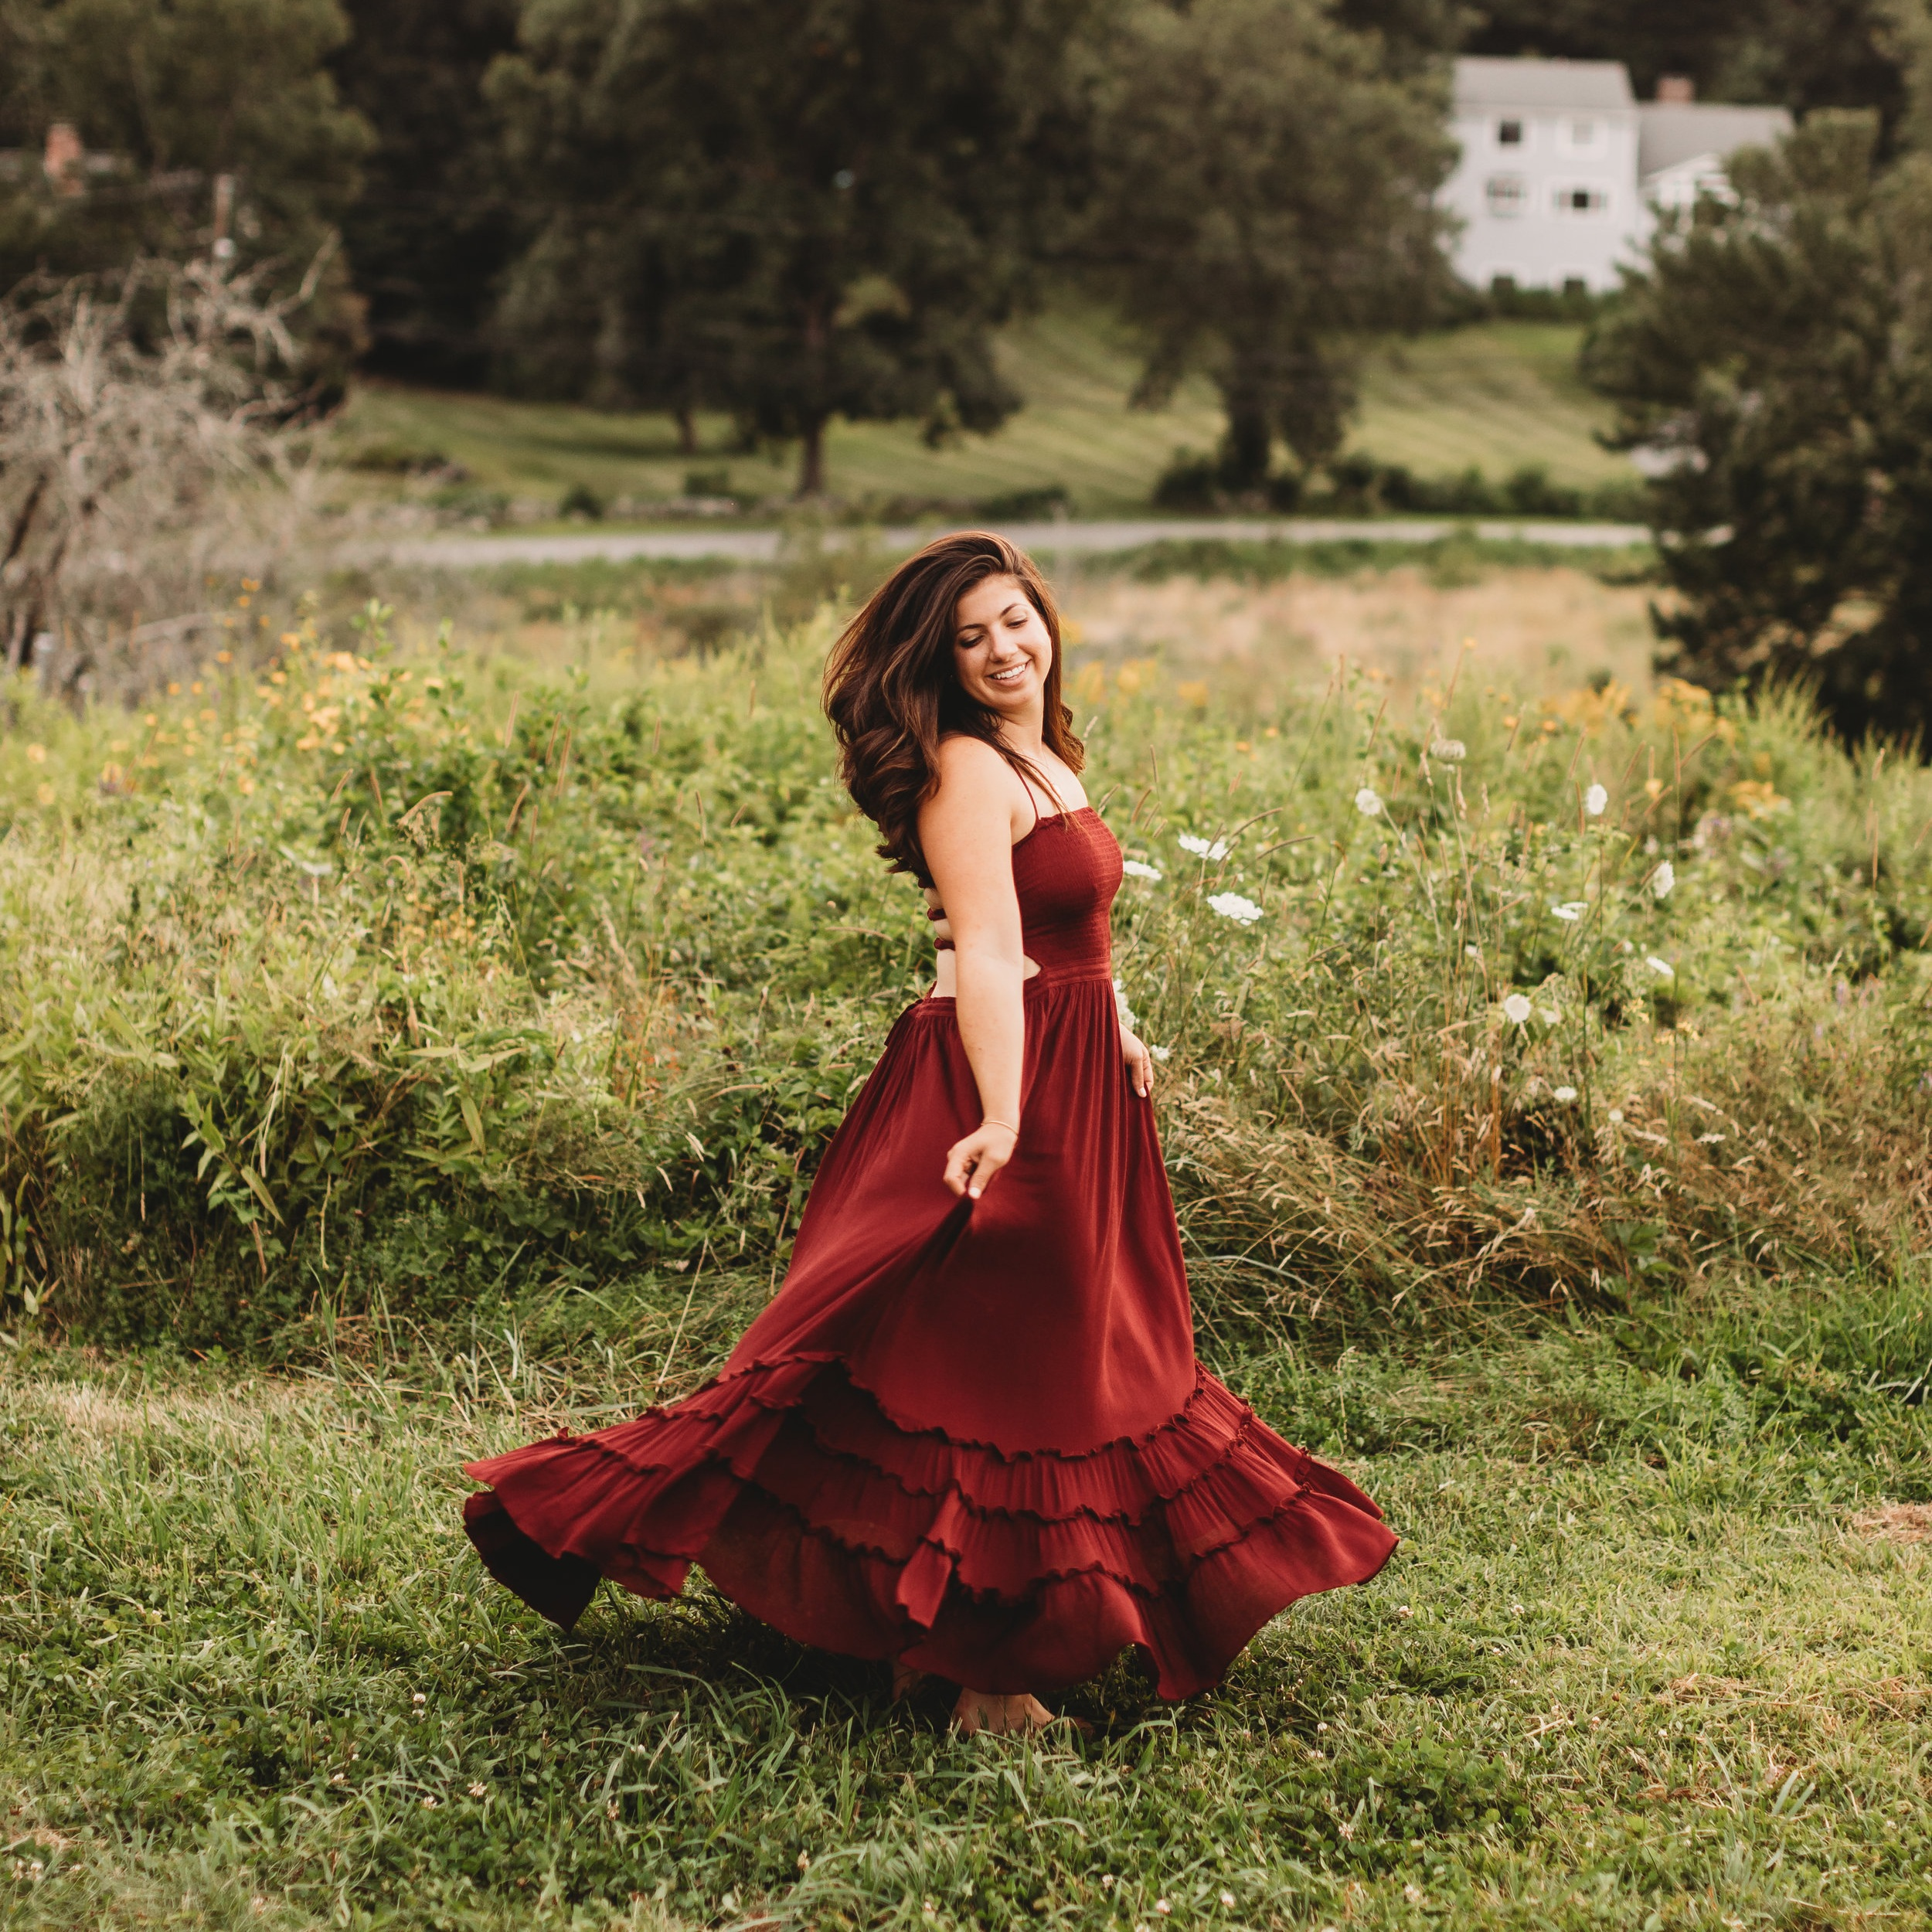 At Joy LeDuc Photography, we have a selection of long dresses available for clients to borrow for their photo shoots. This makes it so much easier to choose outfits for the whole family!